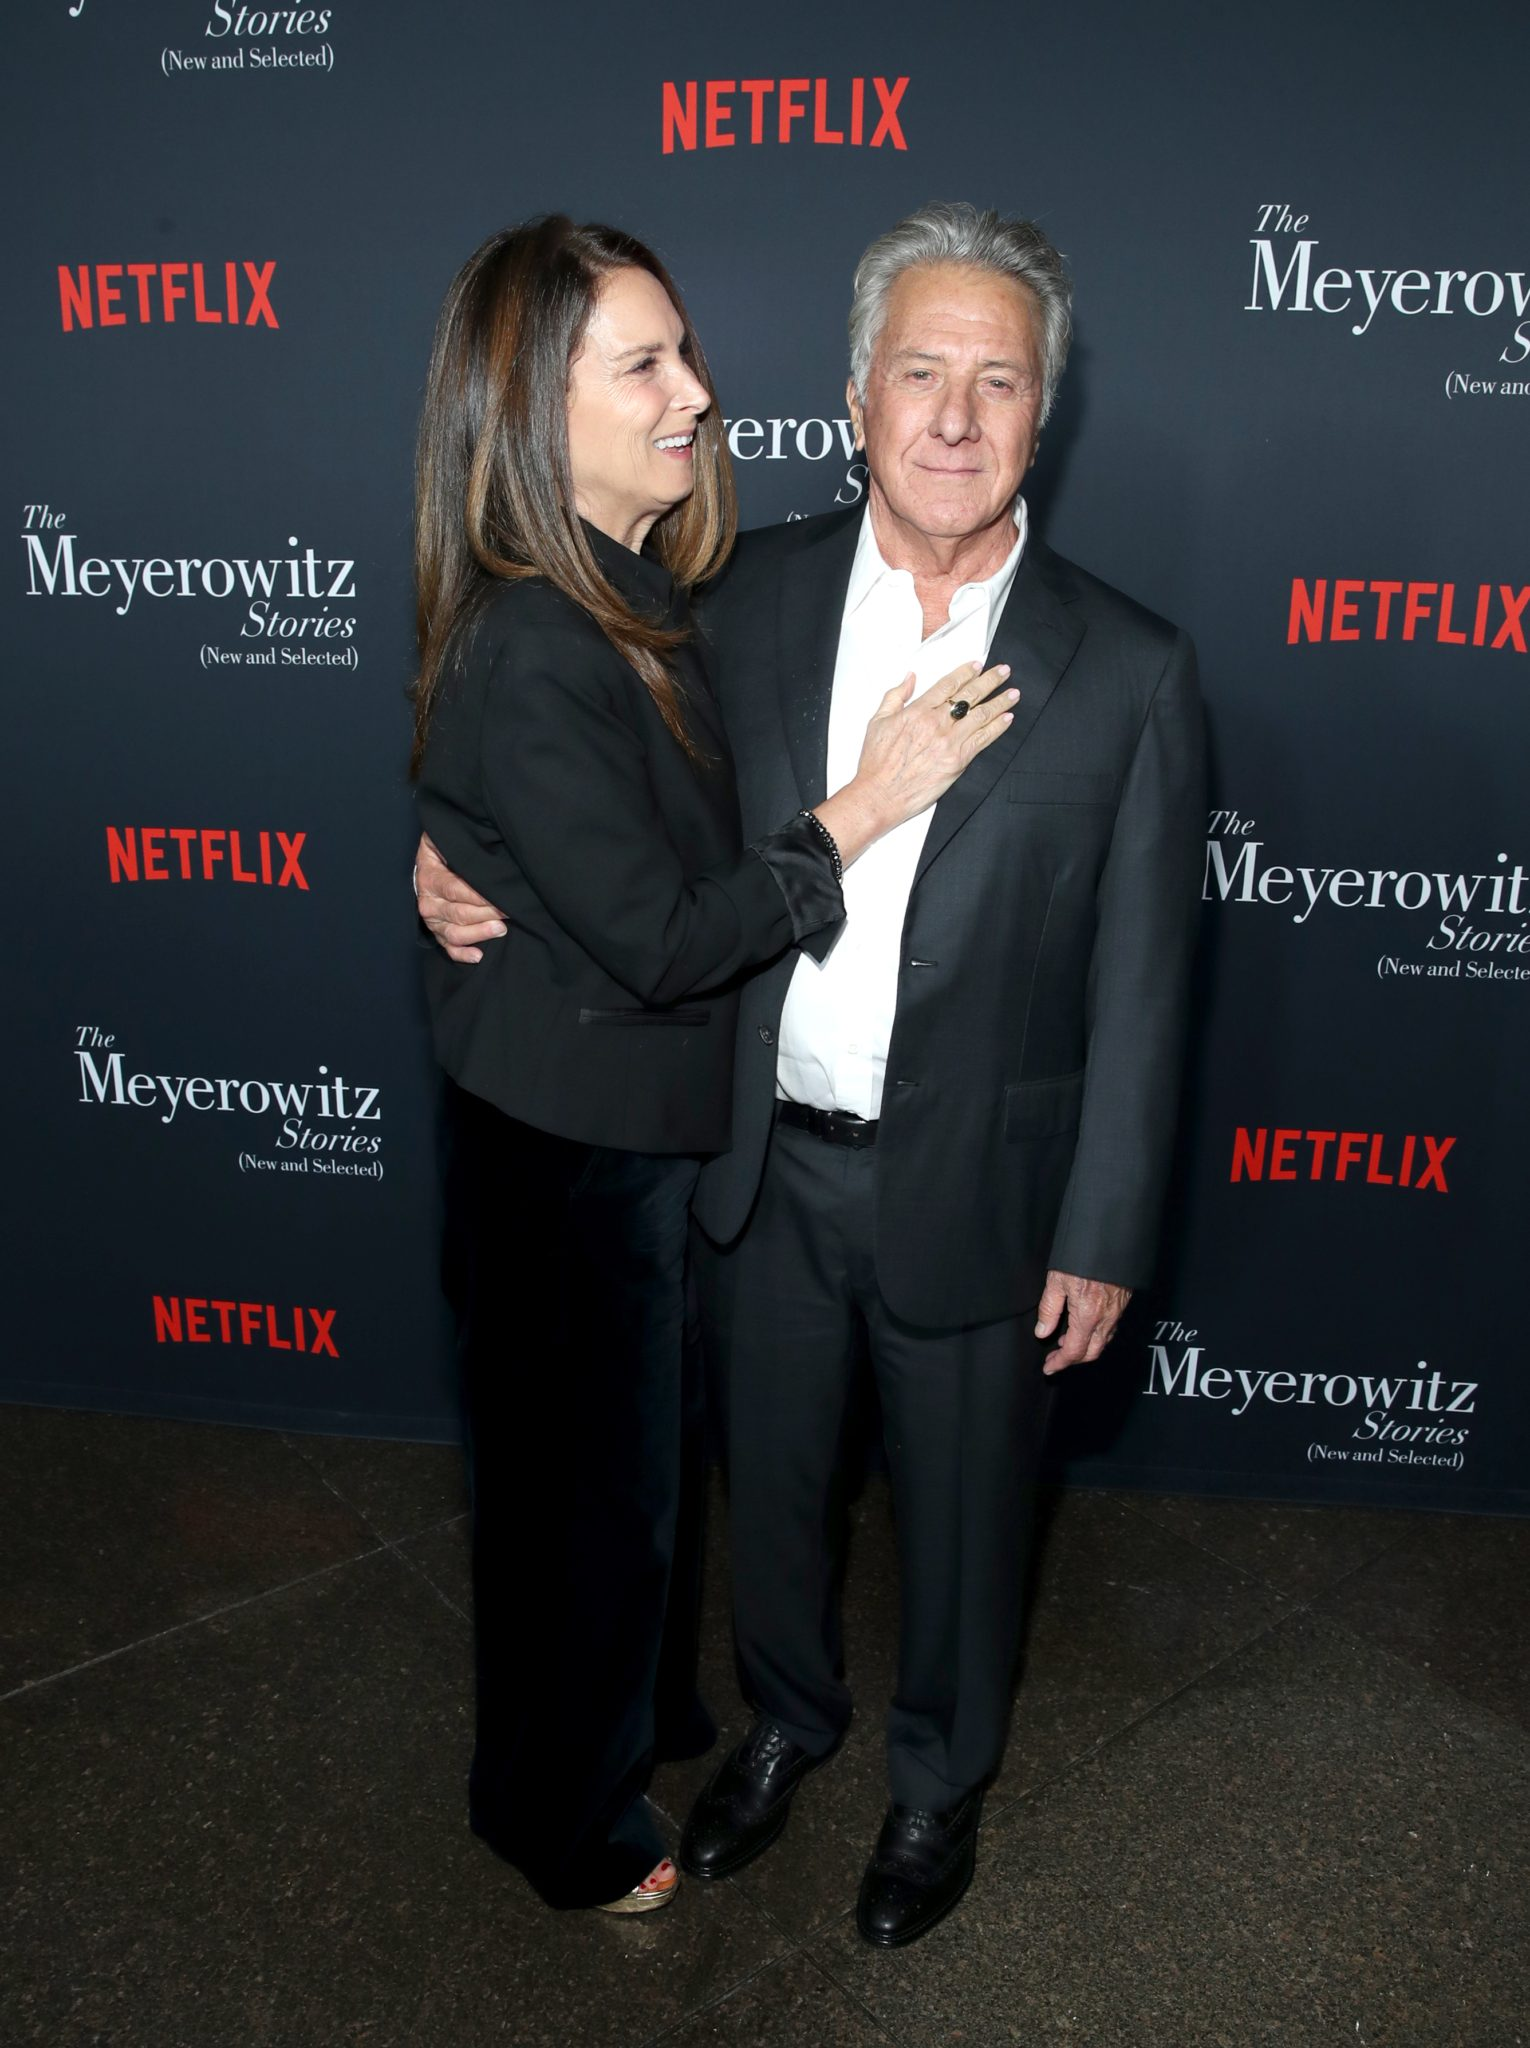 The Meyerowitz Stories (New And Selected) Special Screening In Los Angeles, CA 4Chion Lifestyle